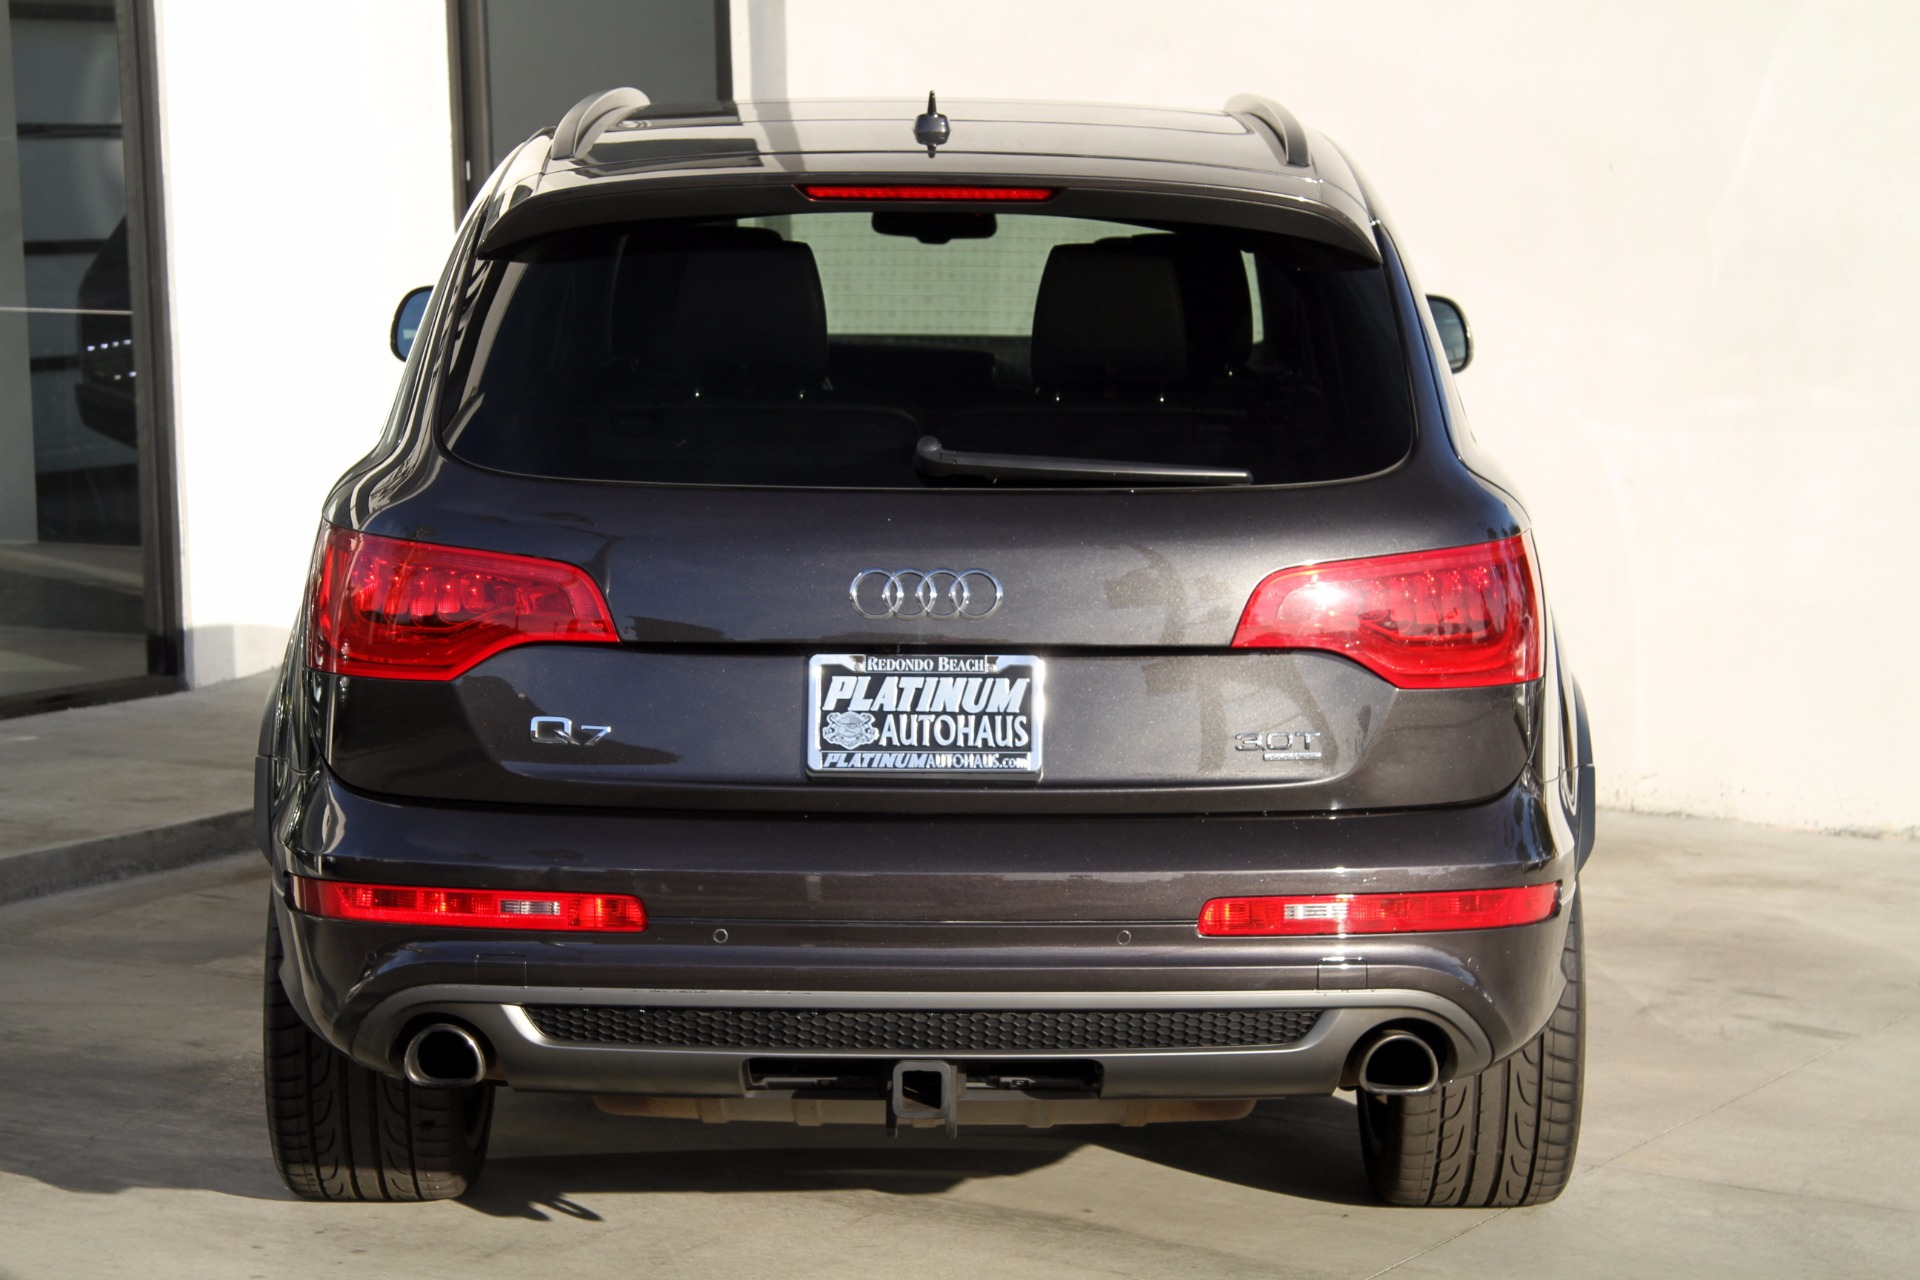 Audi Dealership Near Me >> 2014 Audi Q7 3.0T S-Line Prestige Stock # 6010 for sale near Redondo Beach, CA | CA Audi Dealer